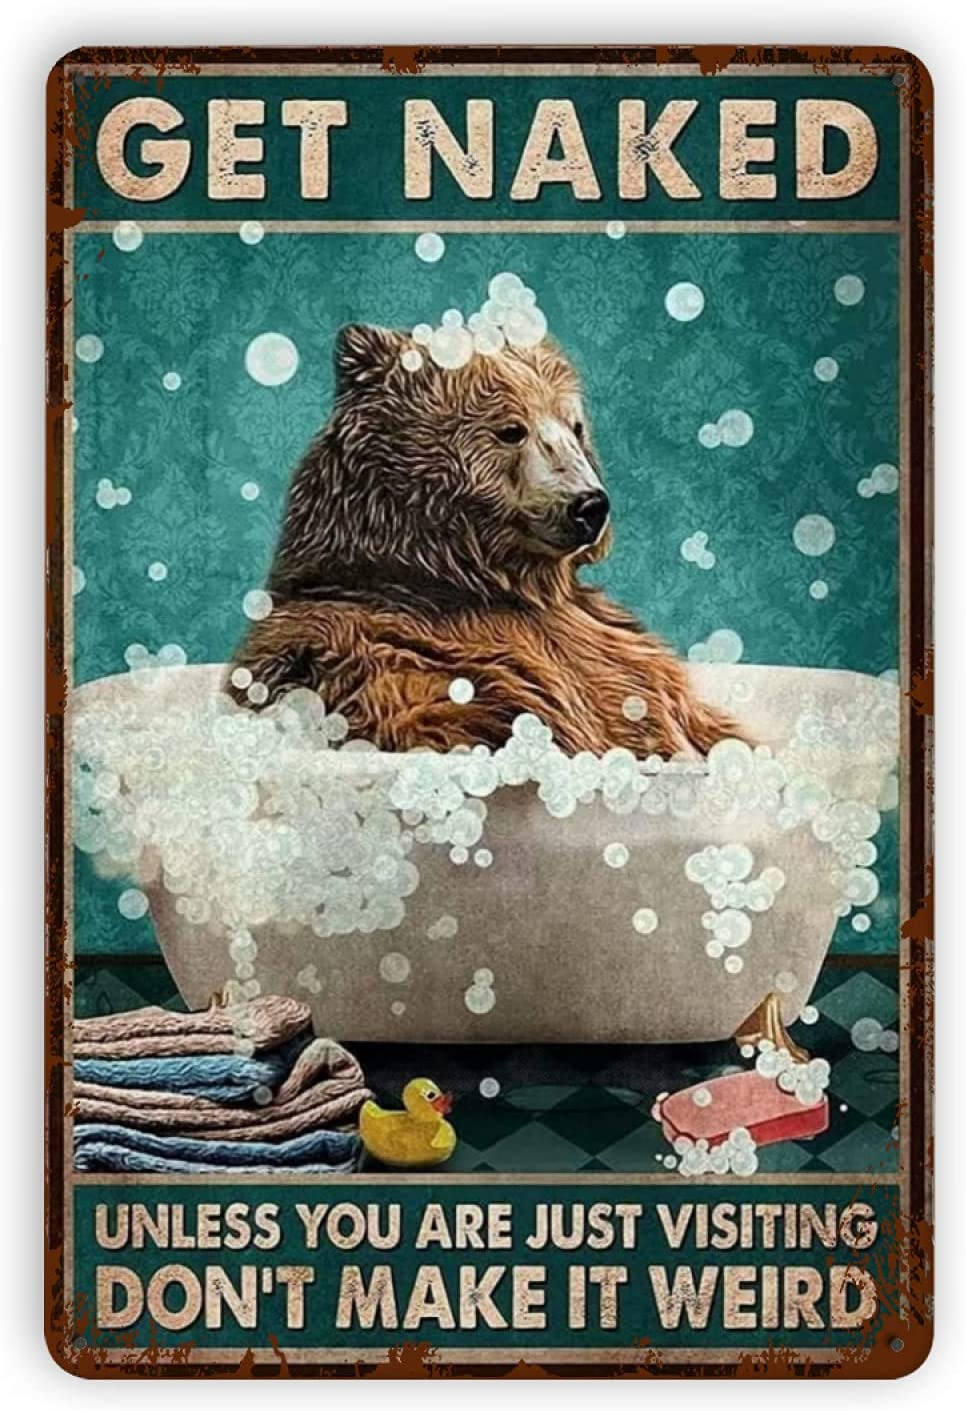 Baby Kleidung Weant Metal Vintage Tin Signs - Bear Bathing in Bathtub Get Naked Funny Wall Decor for Home Bars Pubs Cafes Bathroom Retro Art Sign Metal Posters 8x12 Inch